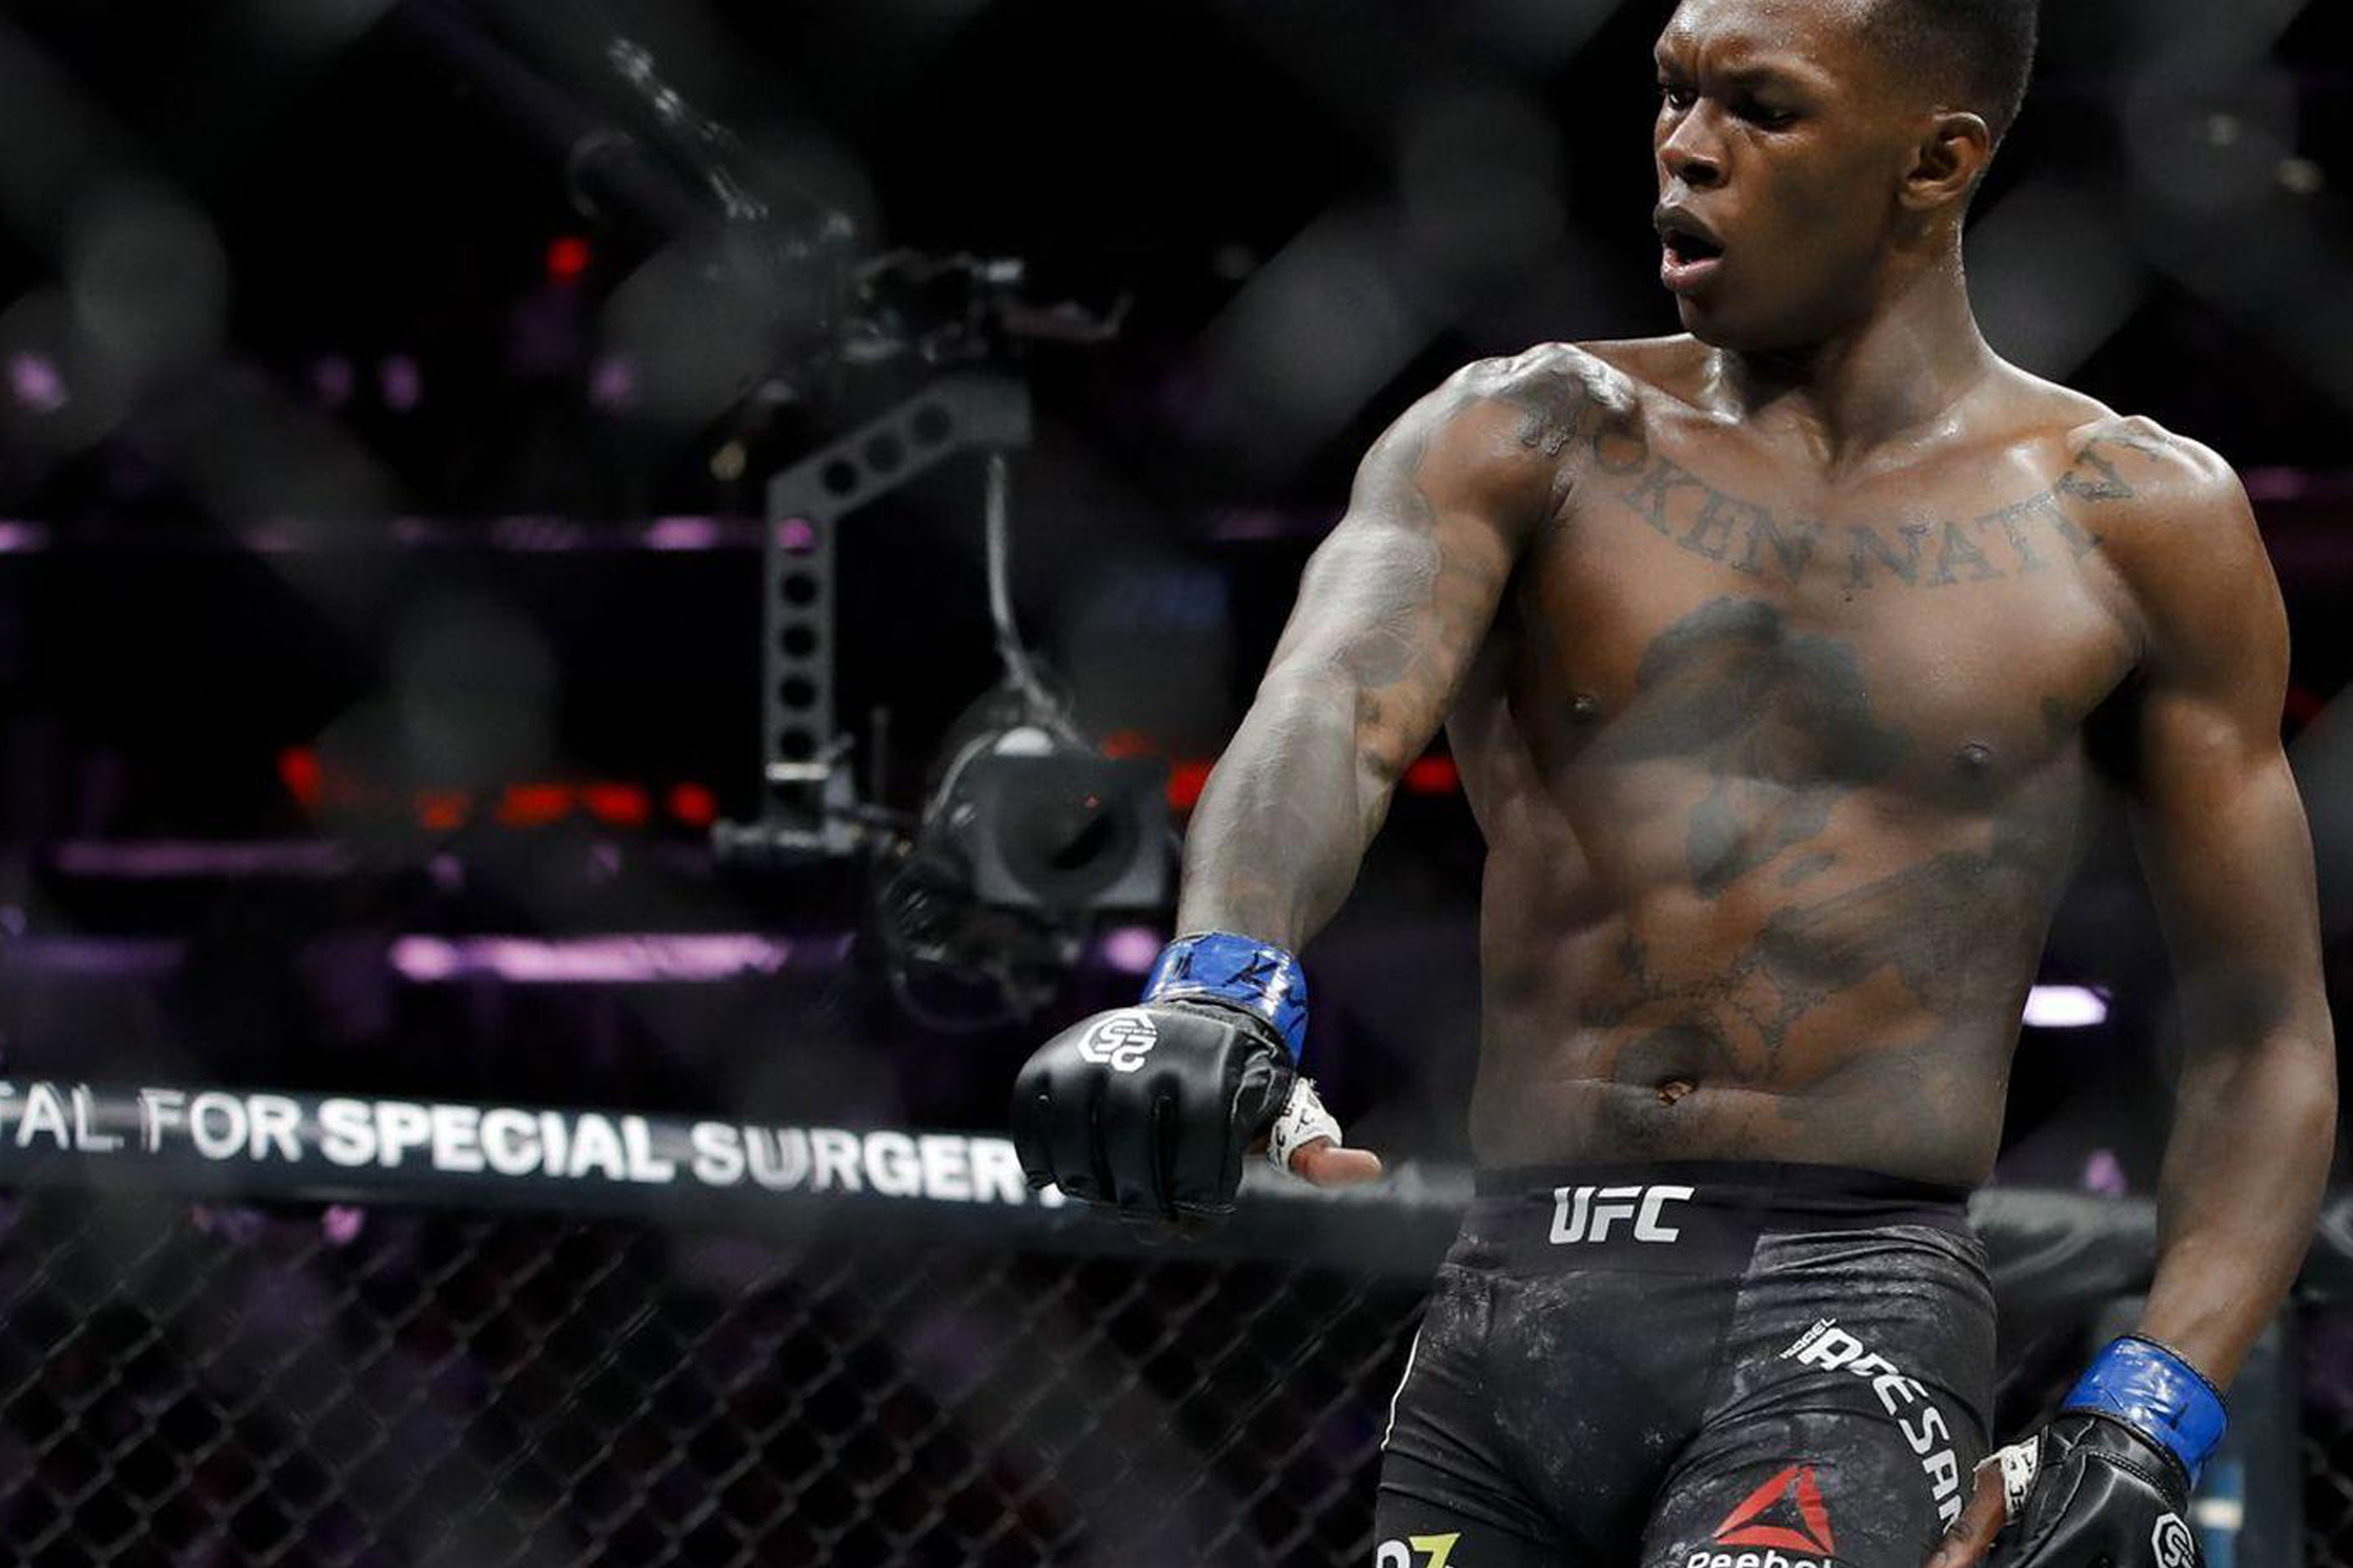 Israel Adesanya, current middleweight champion for UFC